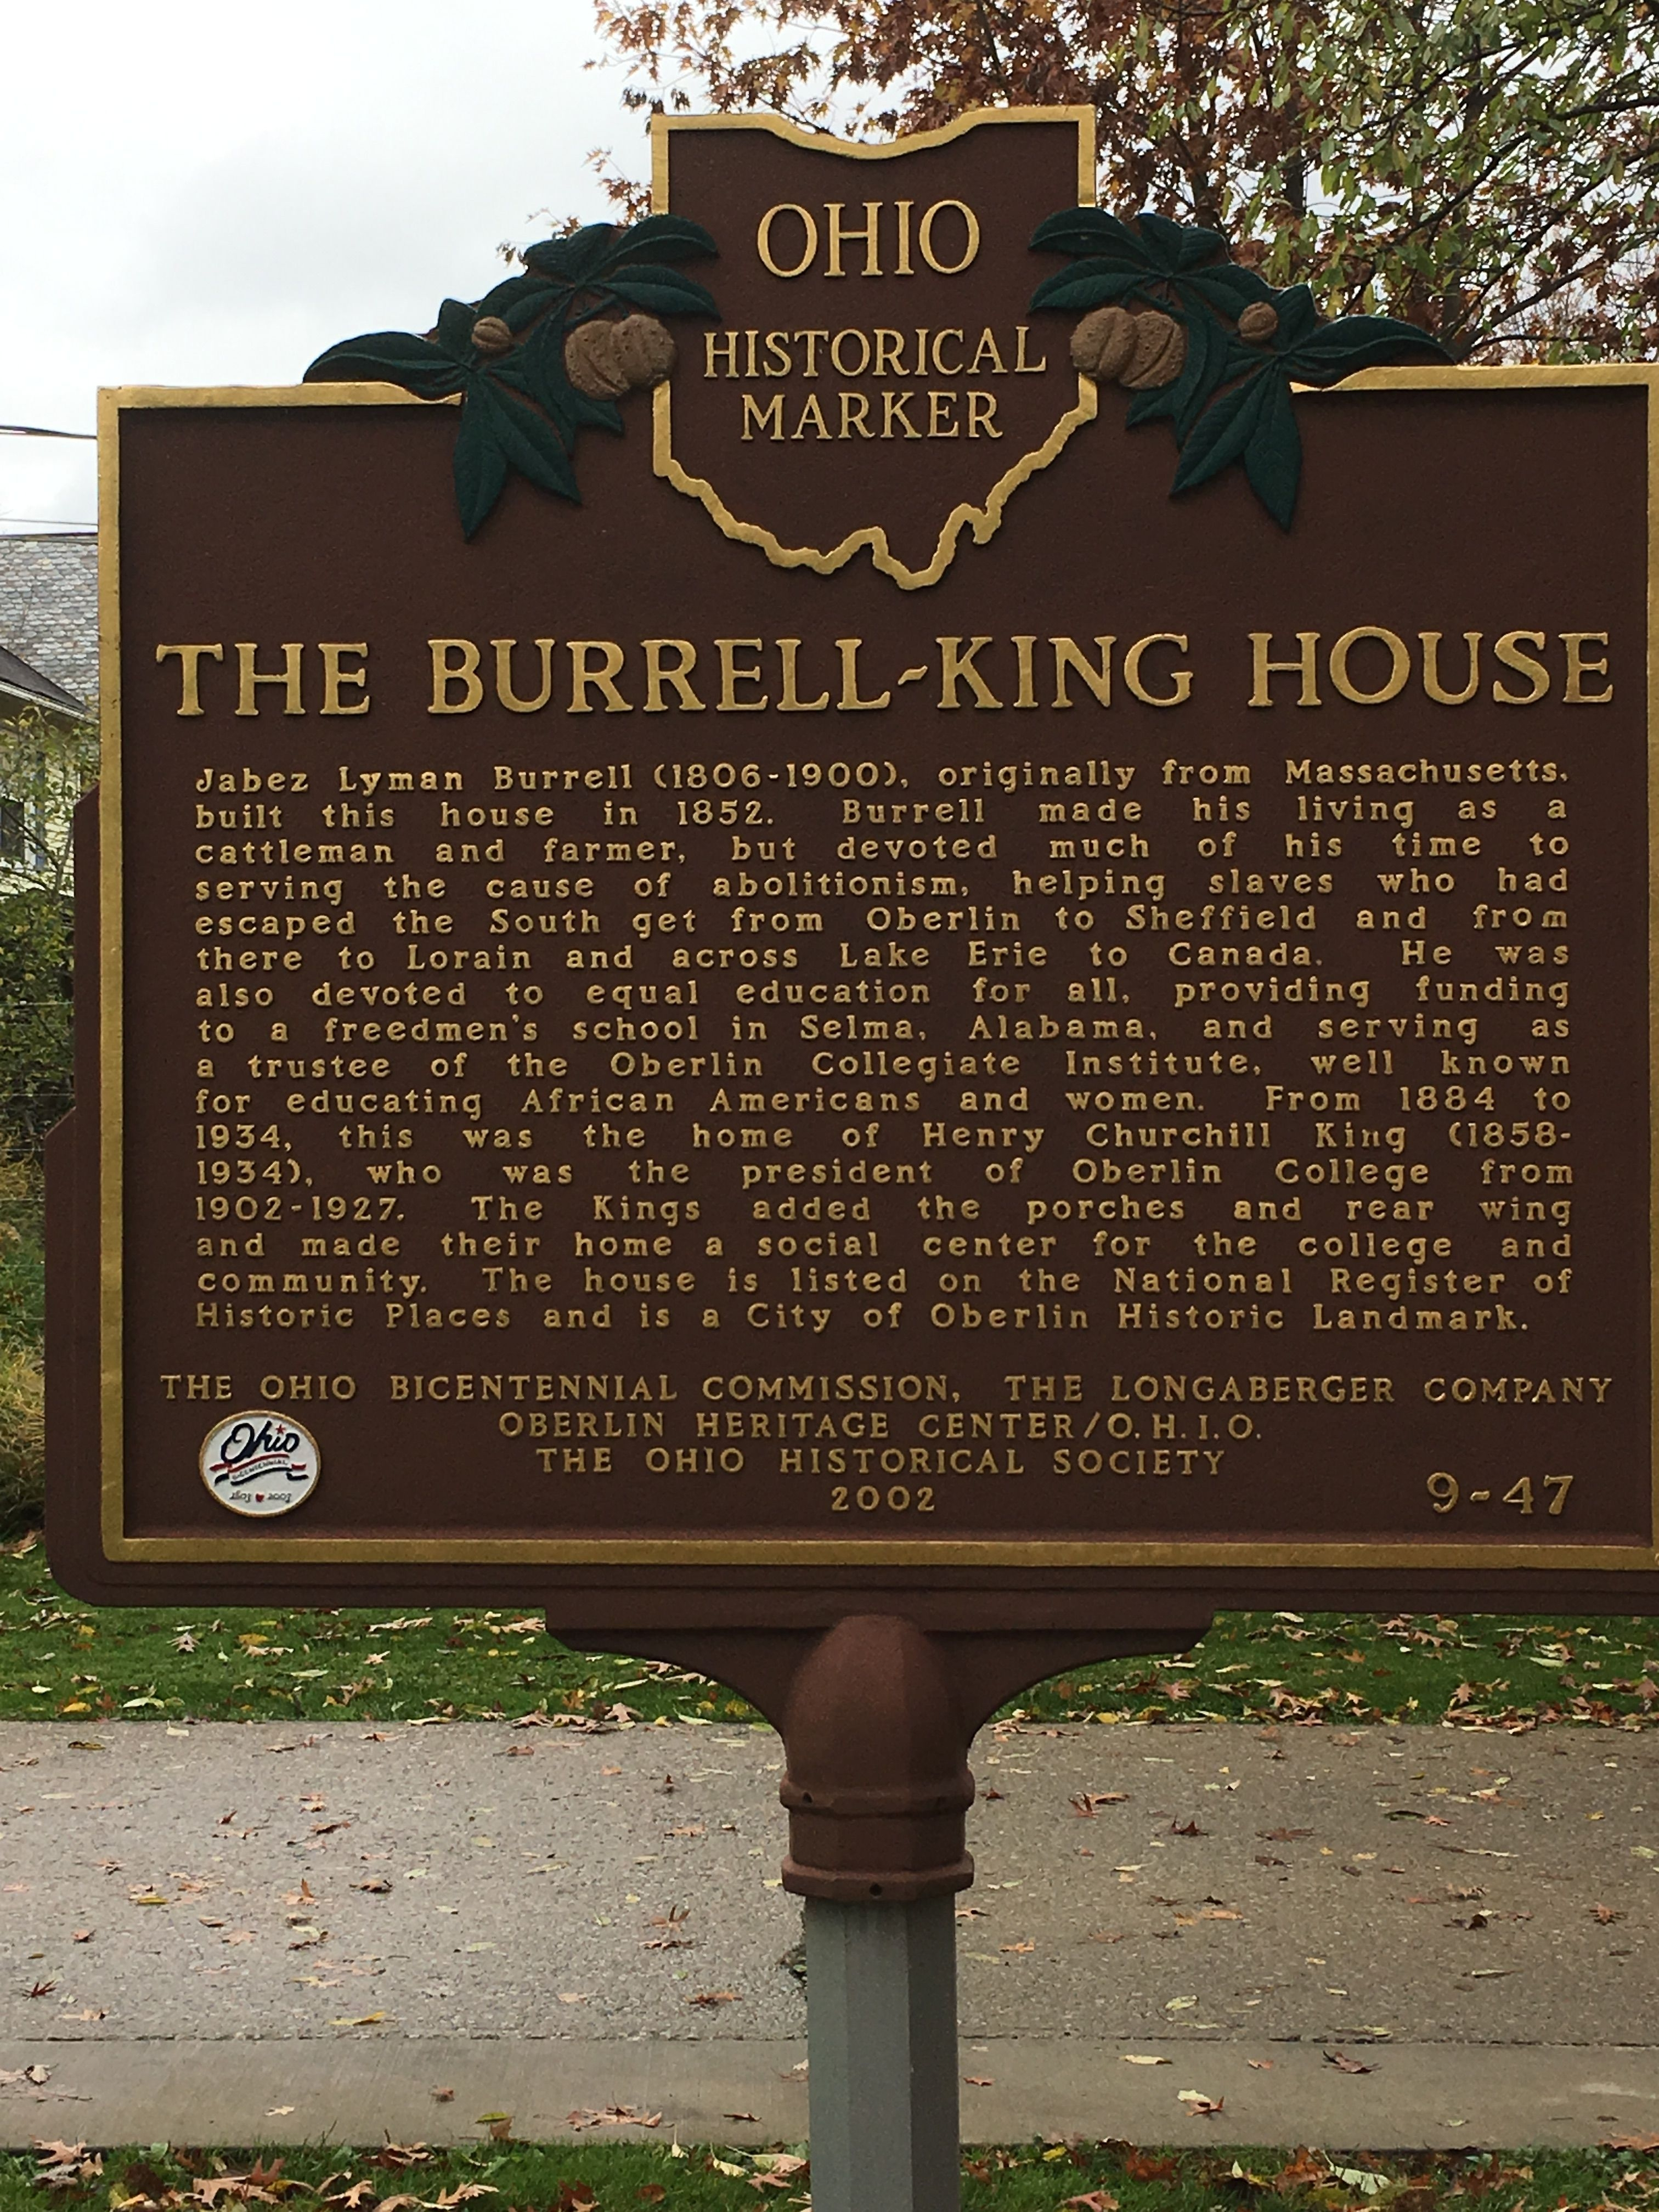 The Burrell-King House Marker